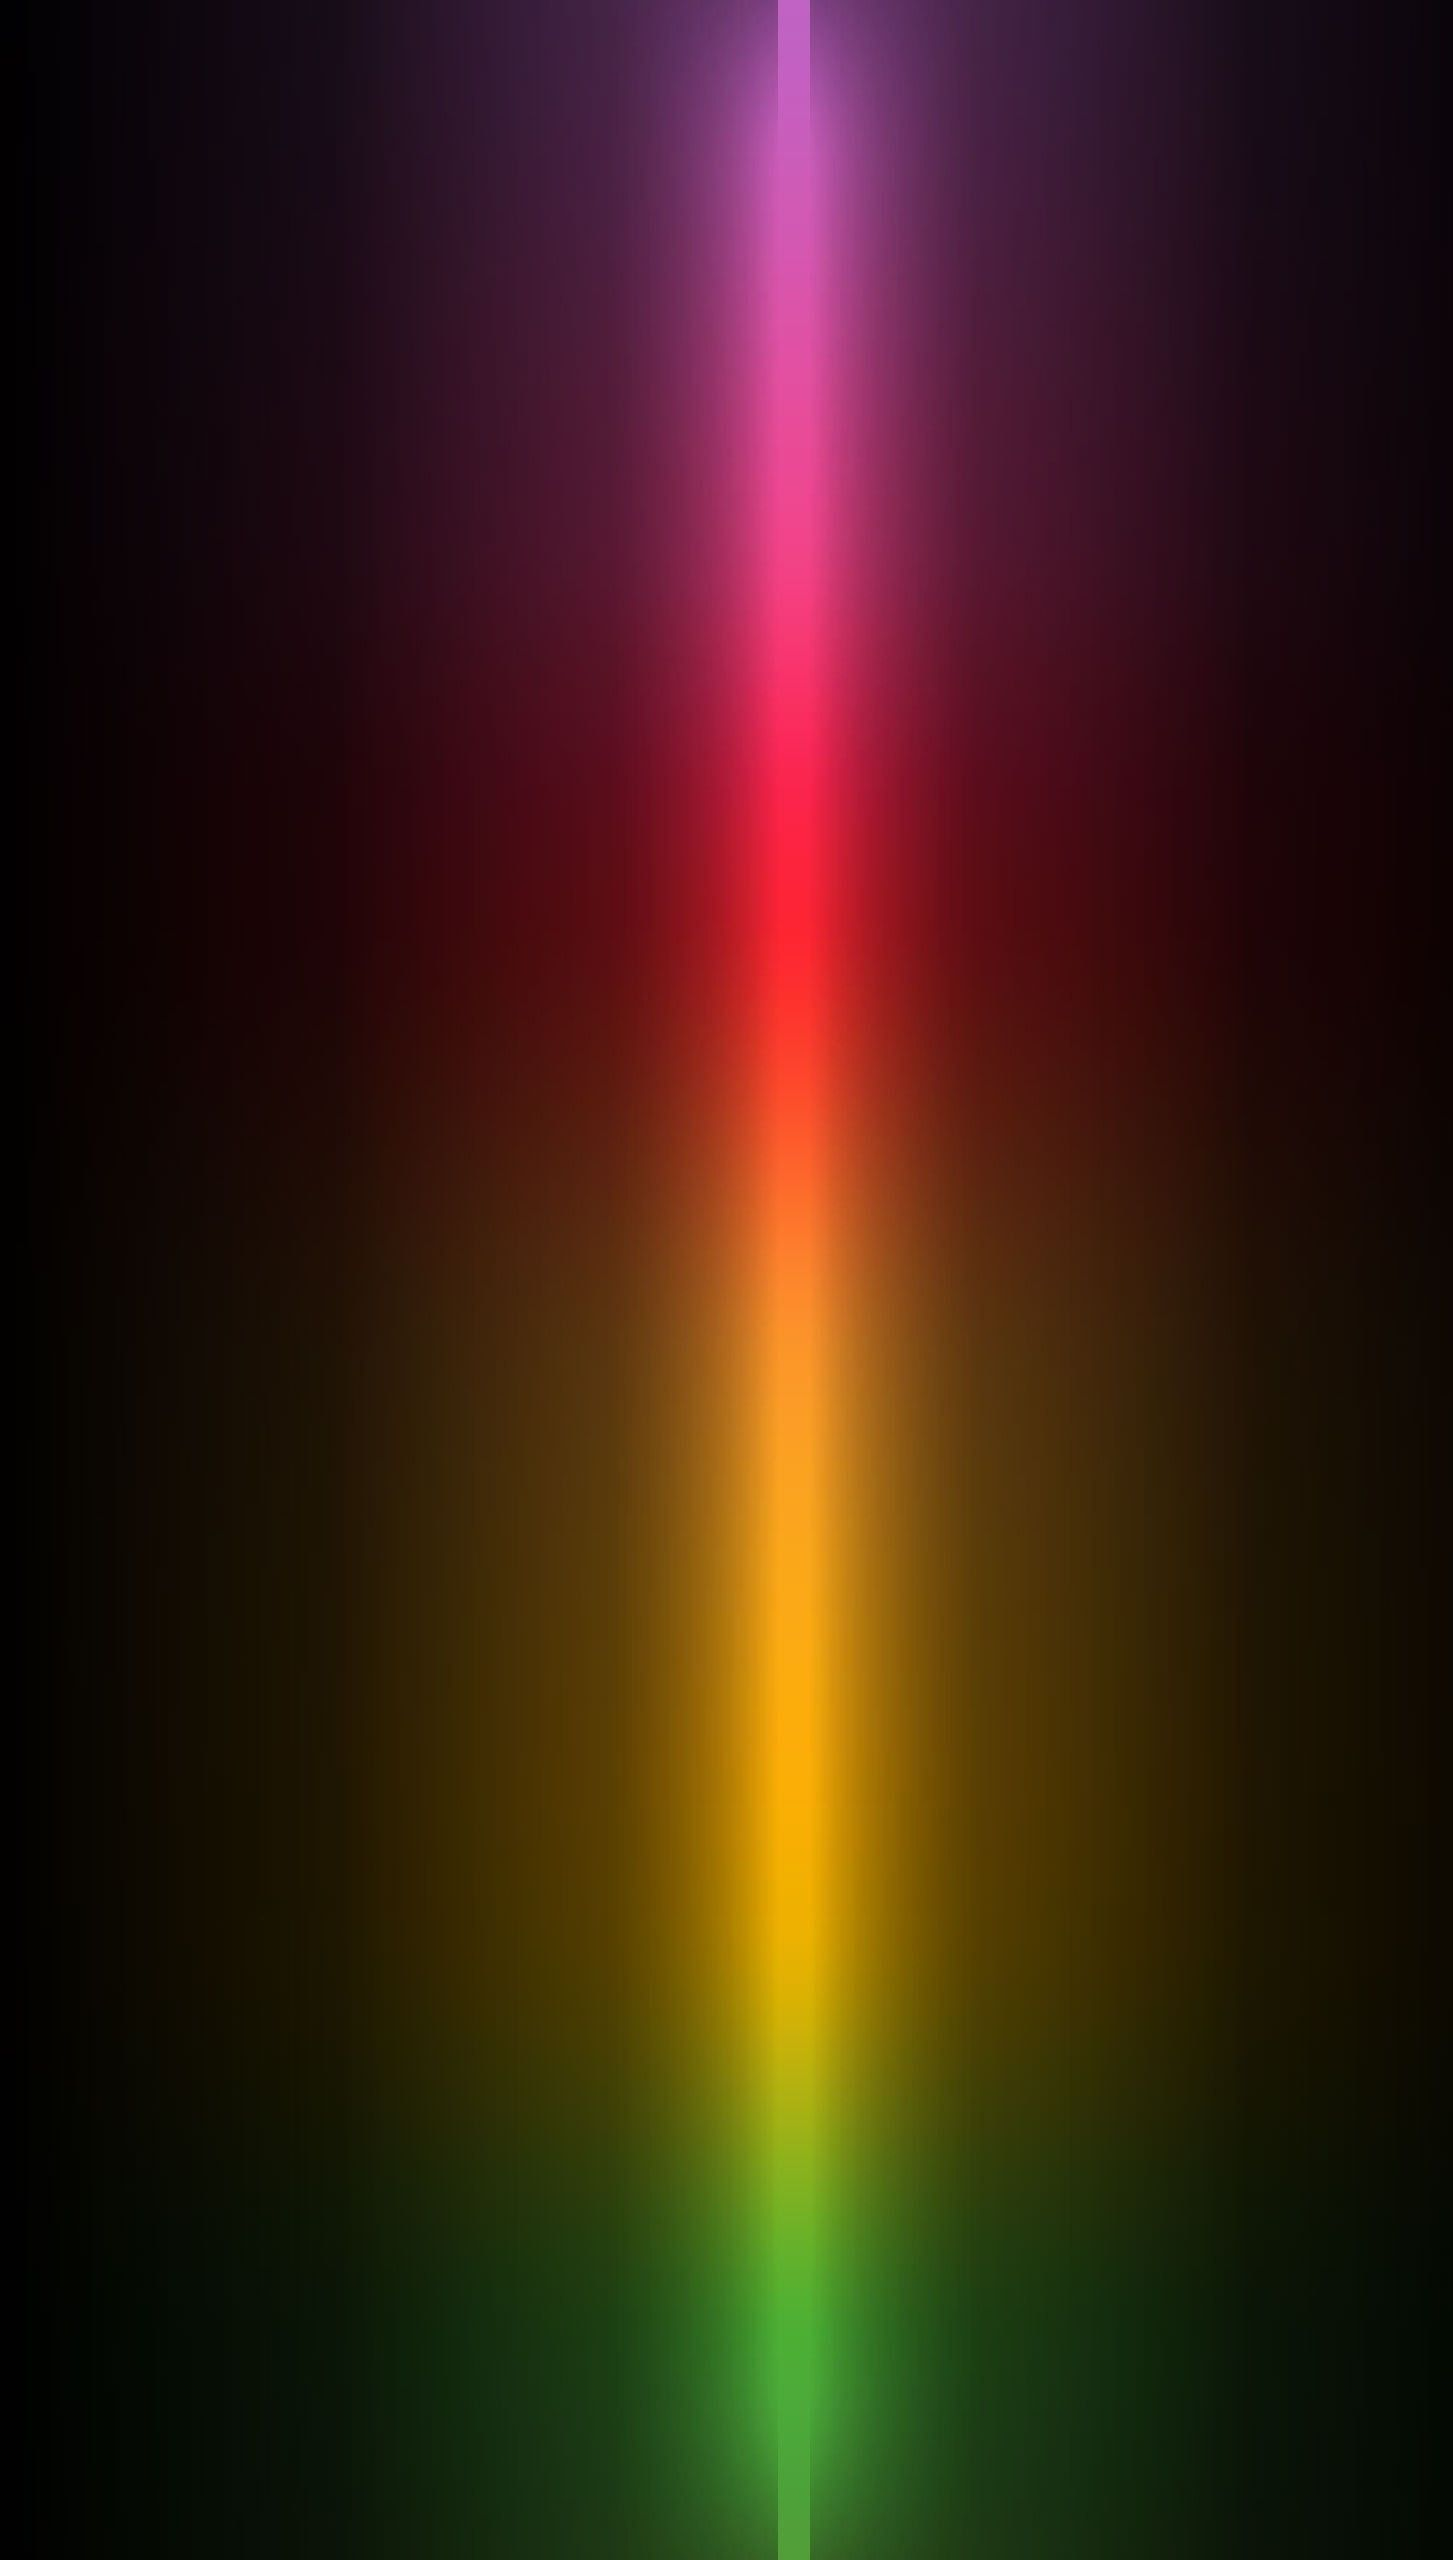 Rainbow Gradient Abstract Wallpaper Phone Wallpaper Images